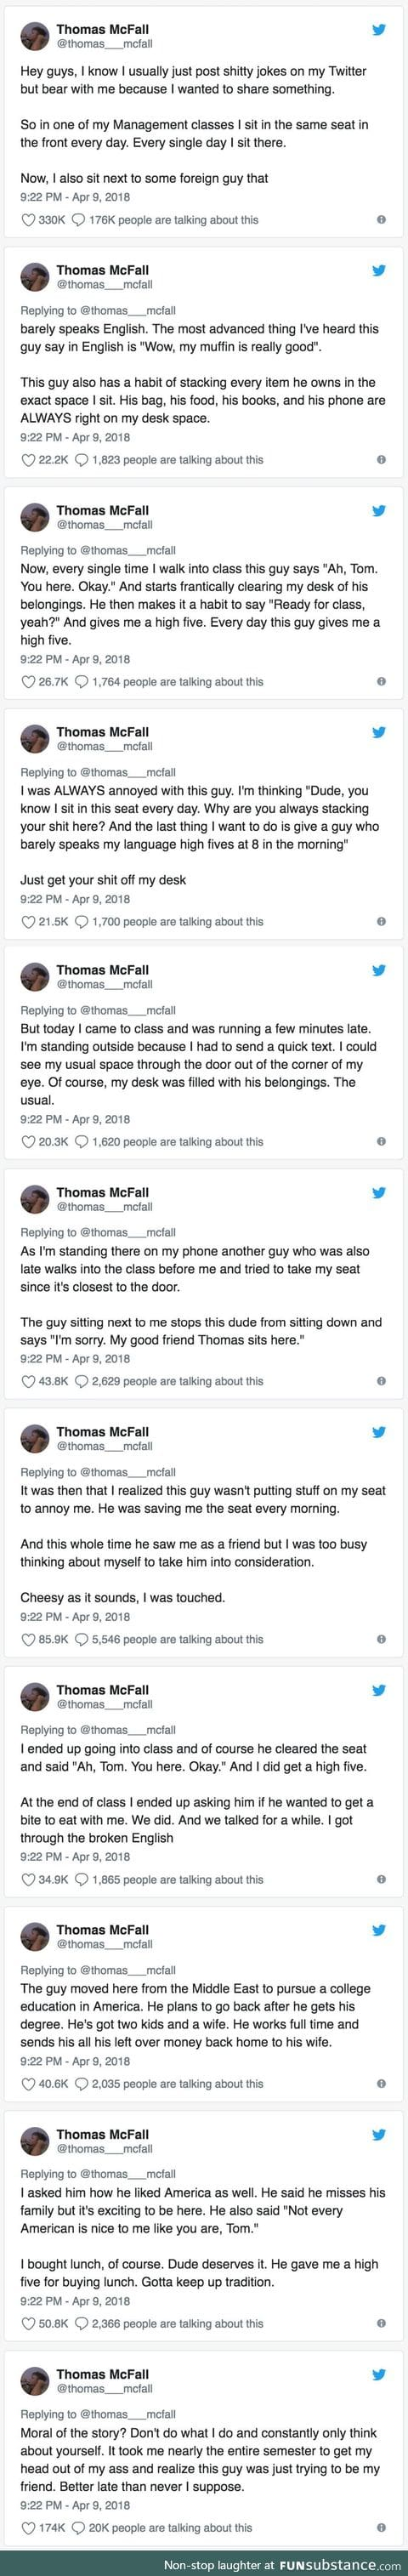 He called out his own ignorance for misjudging a foreign classmate